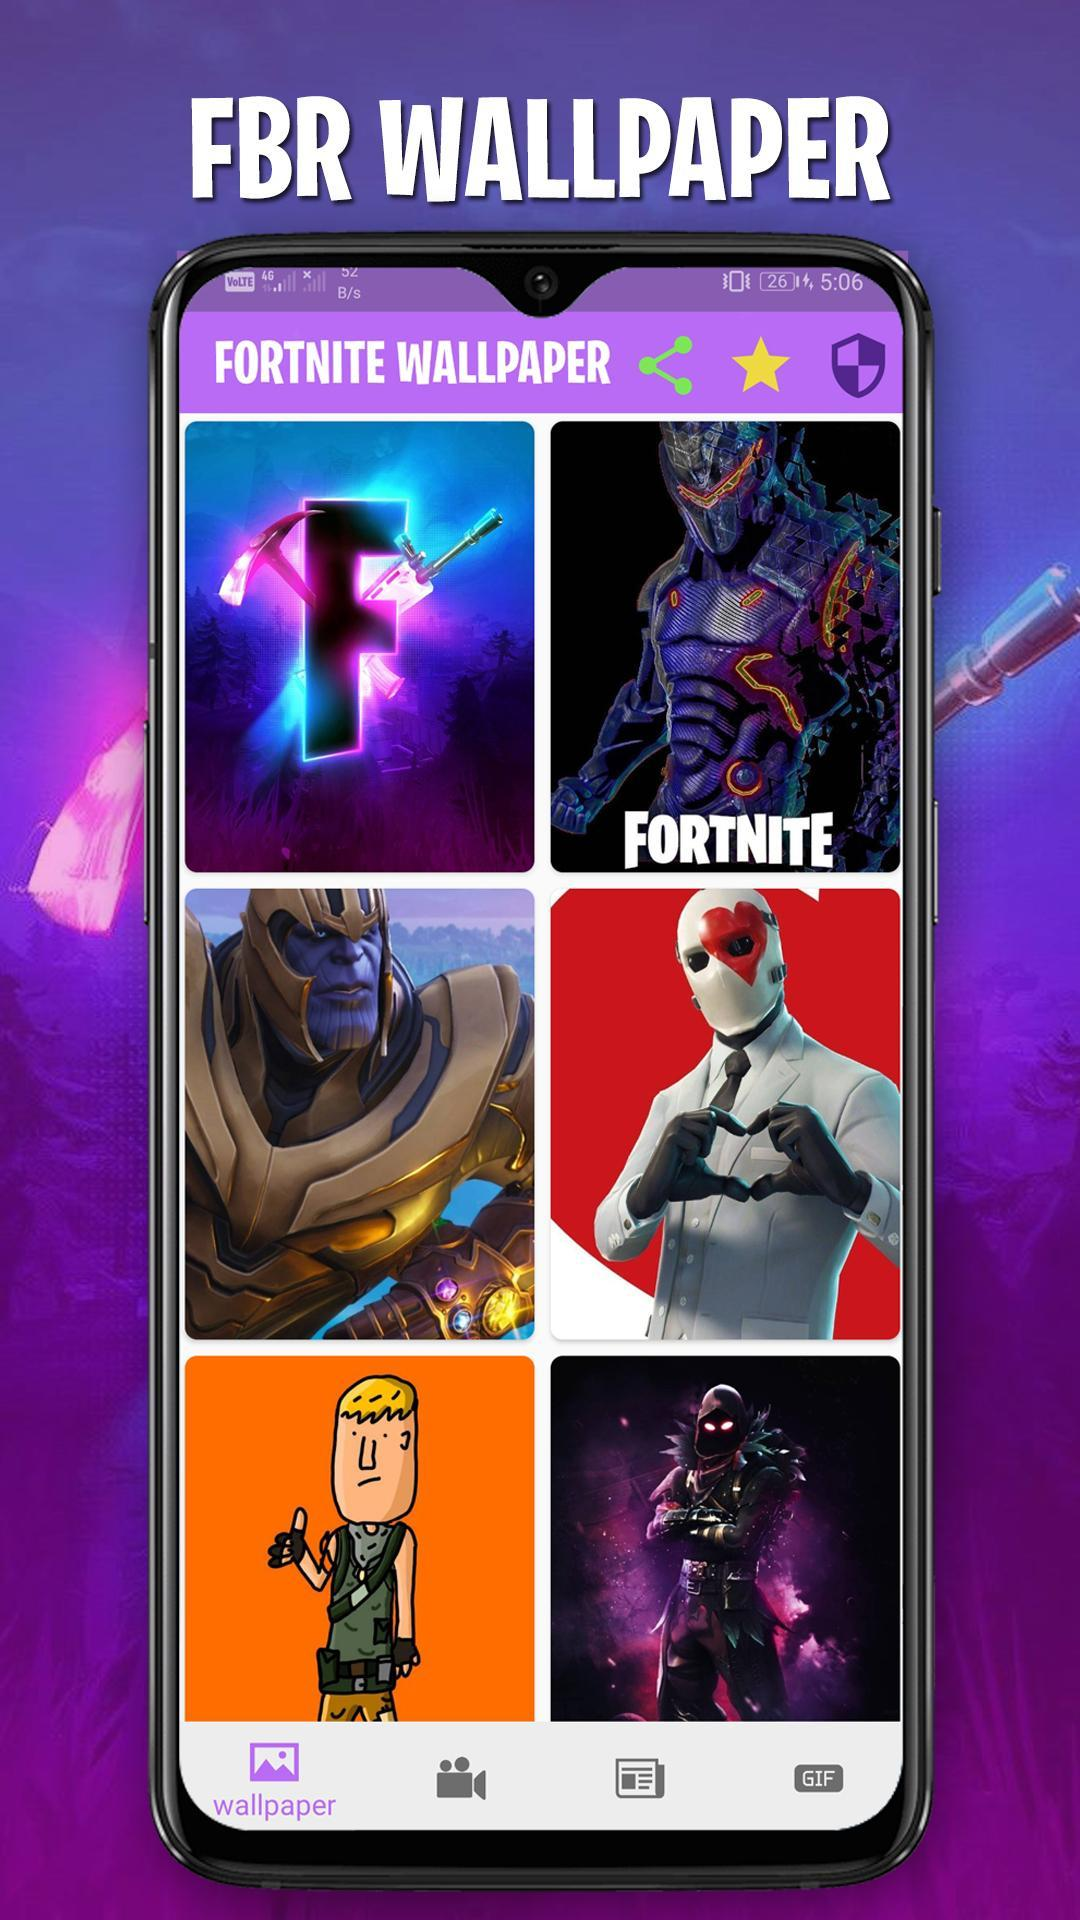 Fbr All In One Wallpaper News Videos Emotes Gif For Android Apk Download